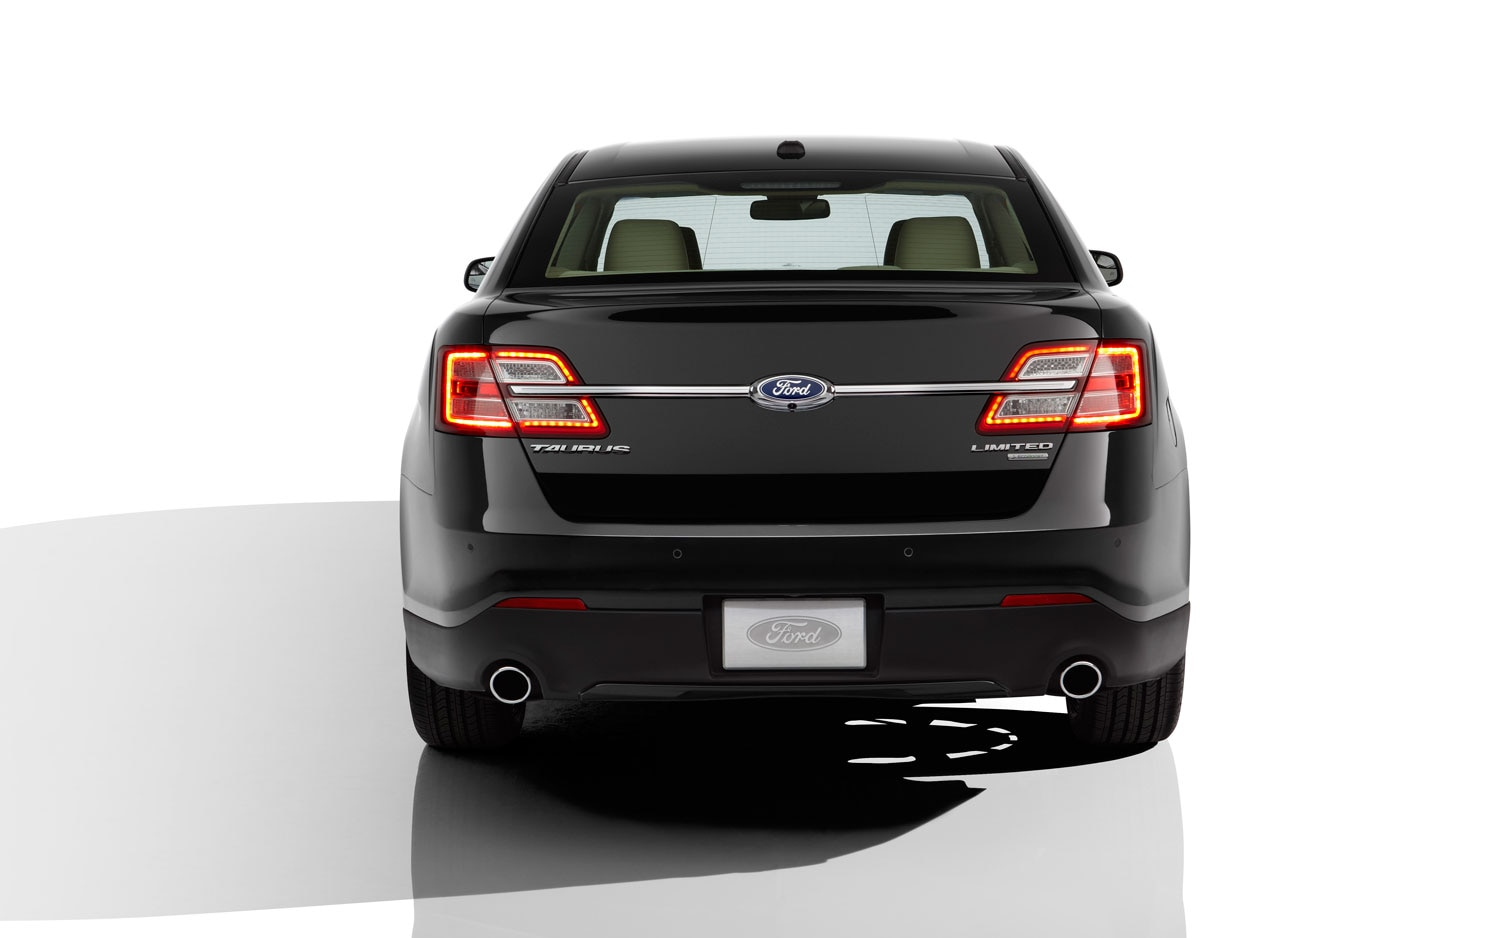 2013 ford taurus rear view 2013 ford taurus first look automobile magazine 2013 ford taurus police interceptor wiring diagram at aneh.co